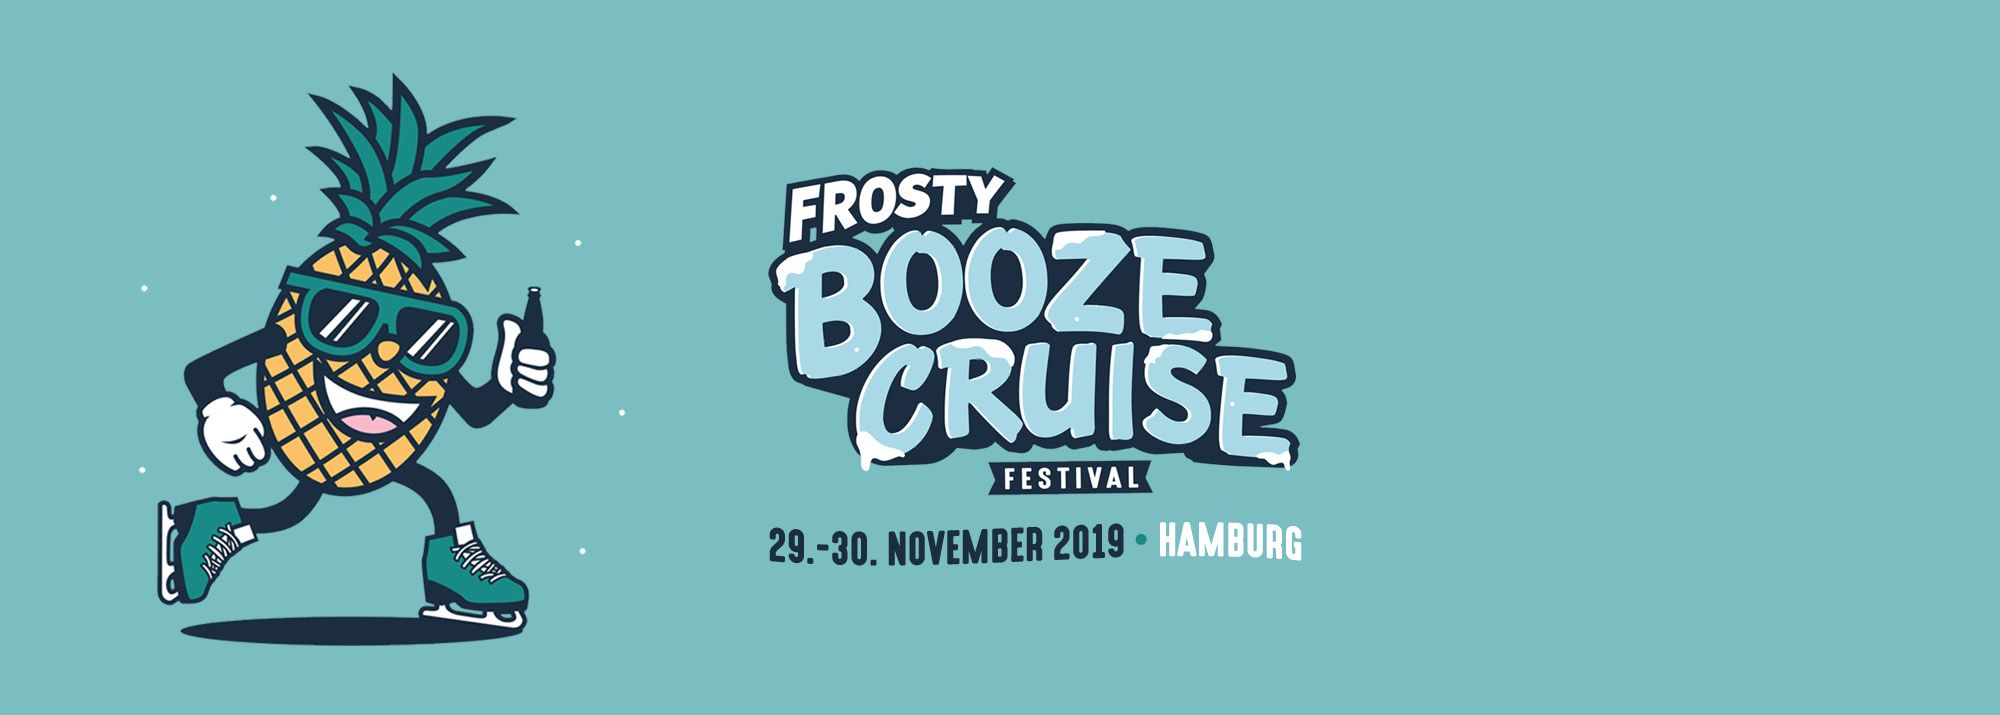 FROSTY BOOZE CRUISE  - Fr, 29.11.2019 - multiple venues